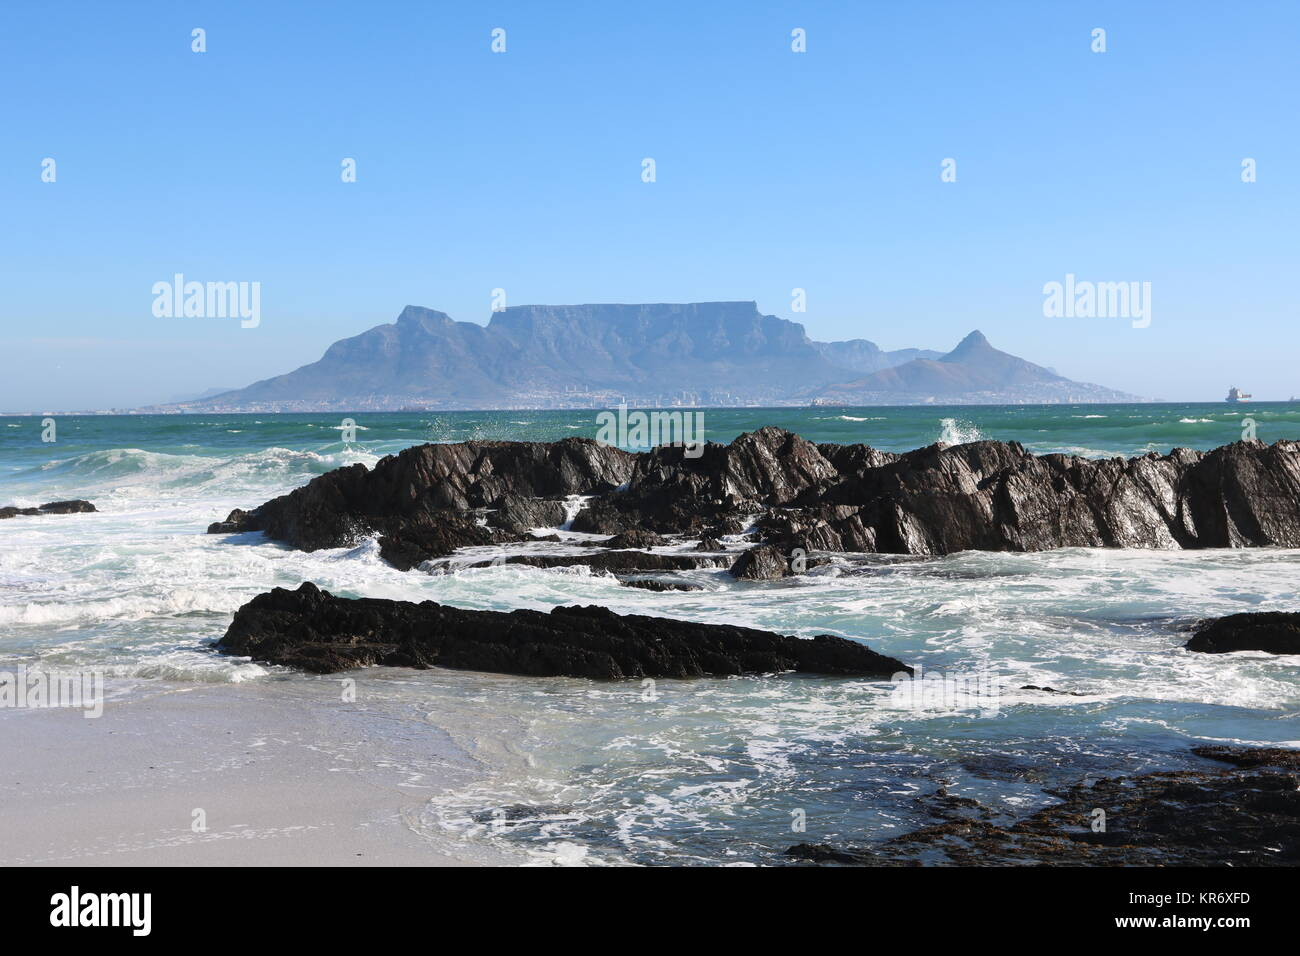 Cape Town South Africa Imagen De Stock